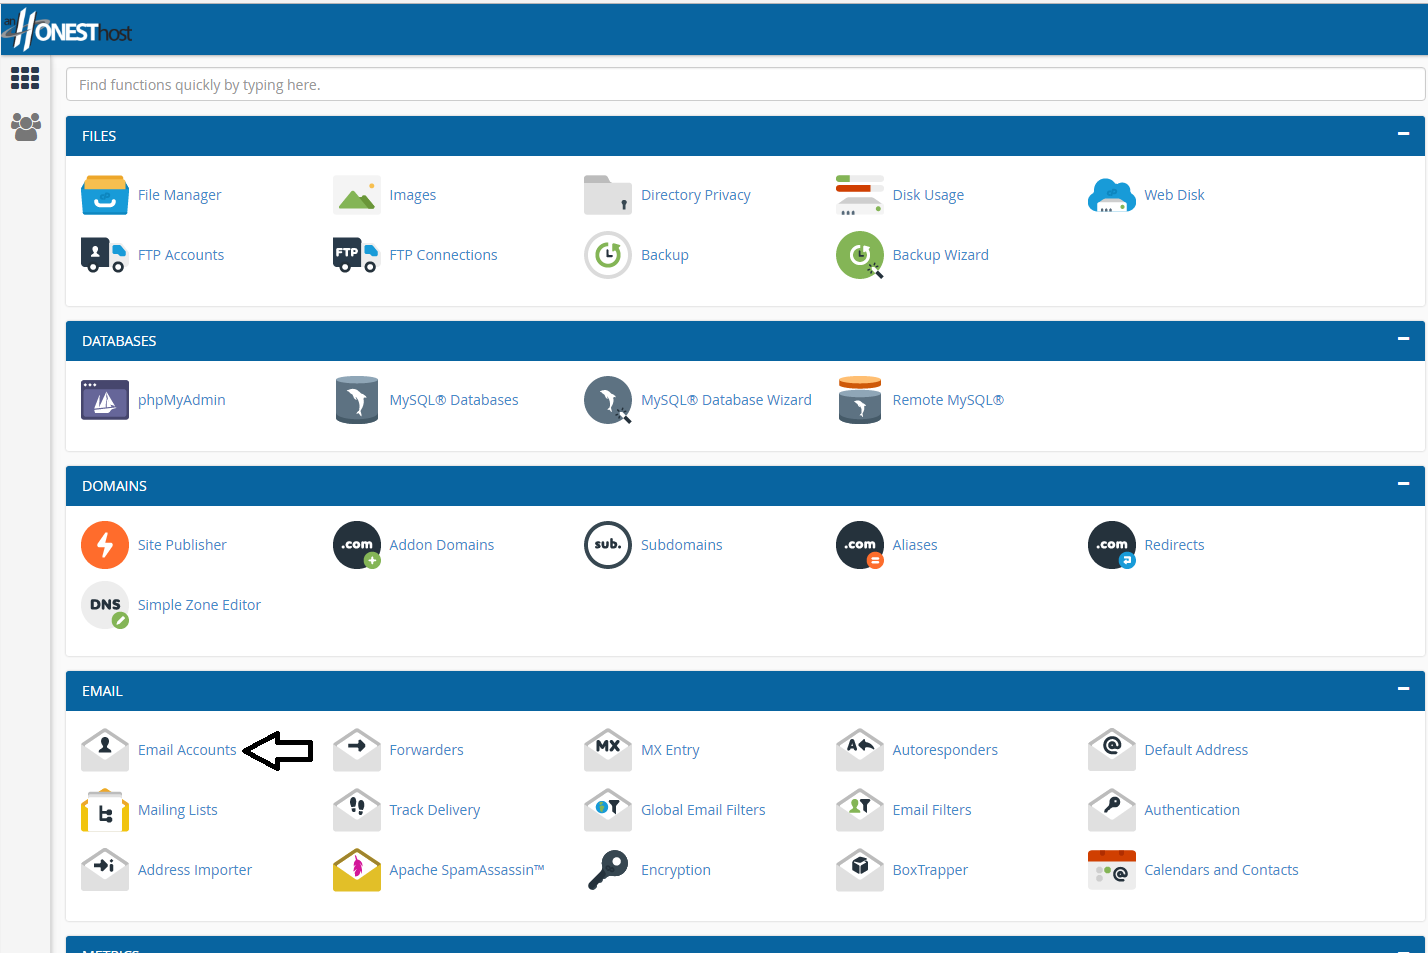 Cpanel backend, with Arrow Pointing to Mail